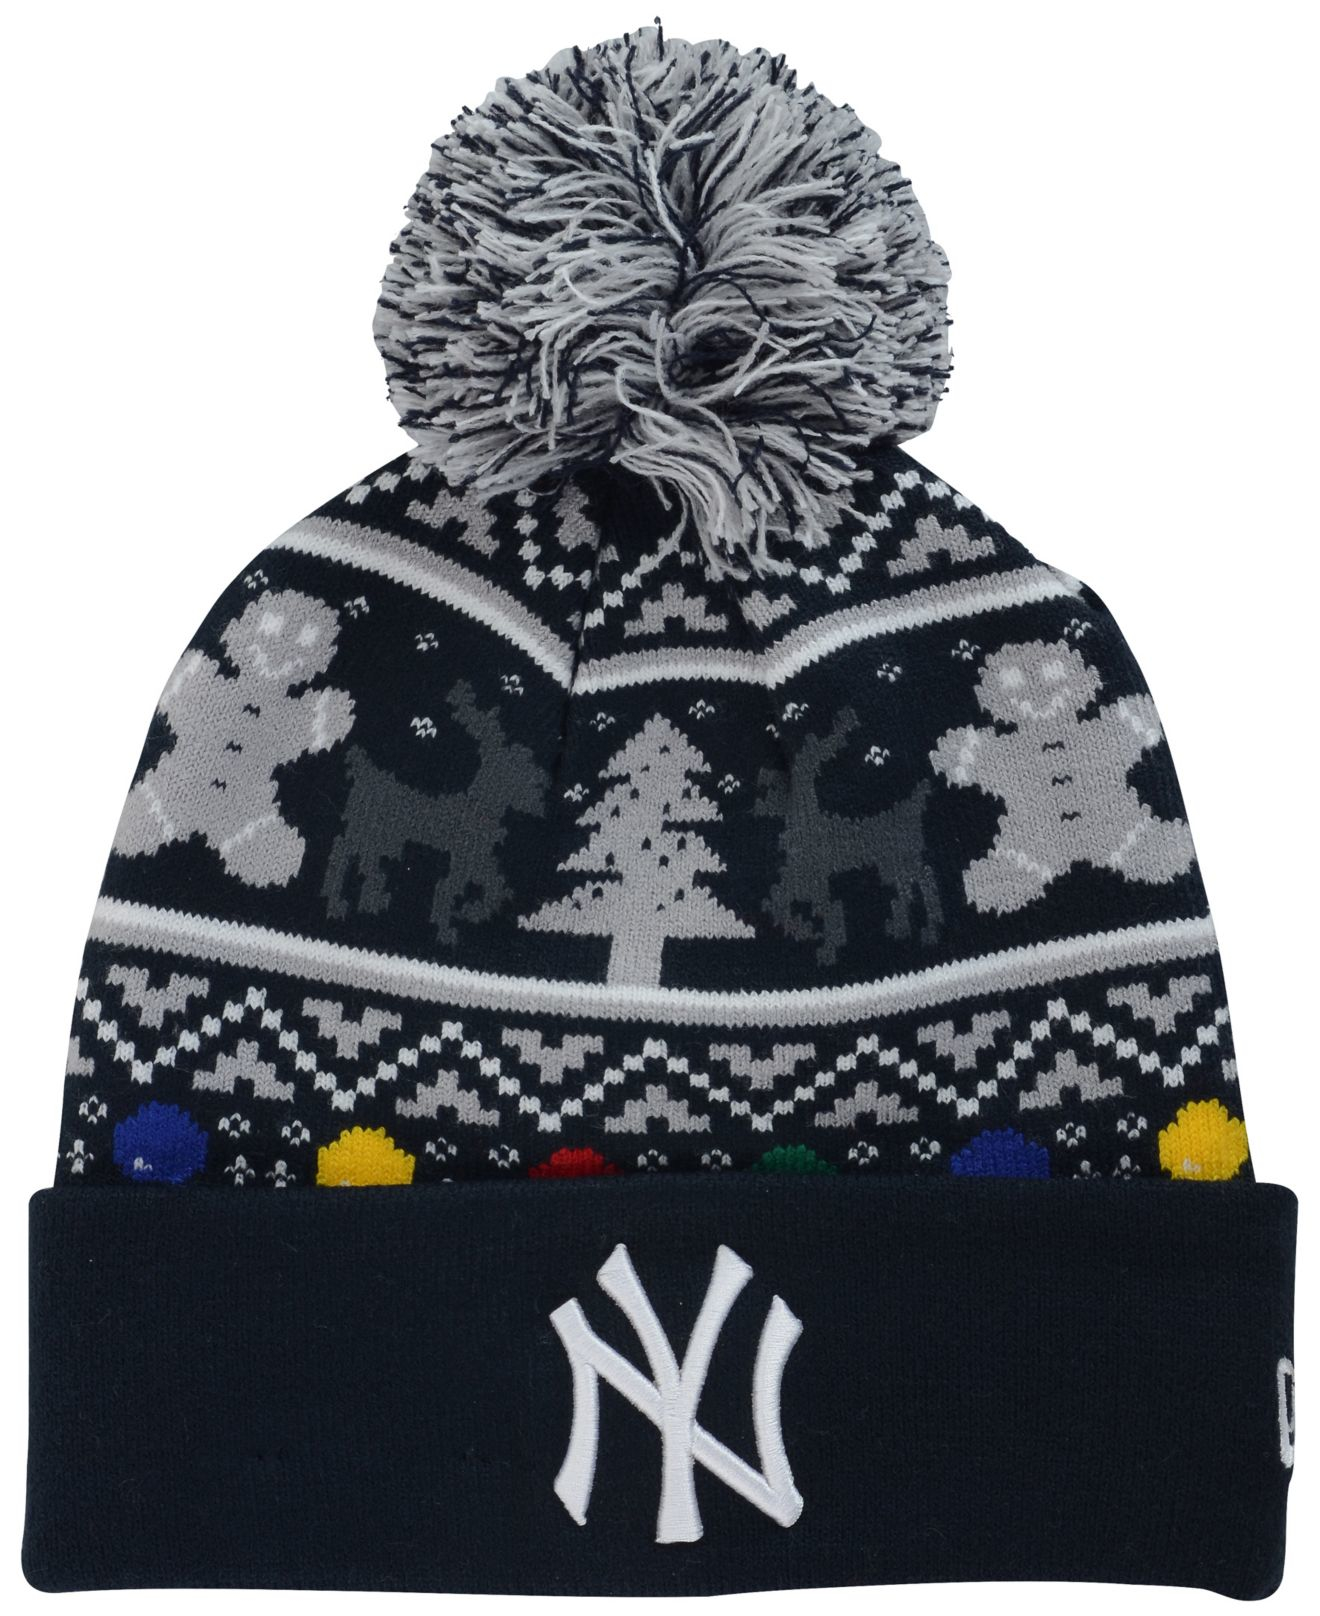 5fb967a4c46 Lyst - KTZ New York Yankees Christmas Sweater Pom Knit Hat in Black